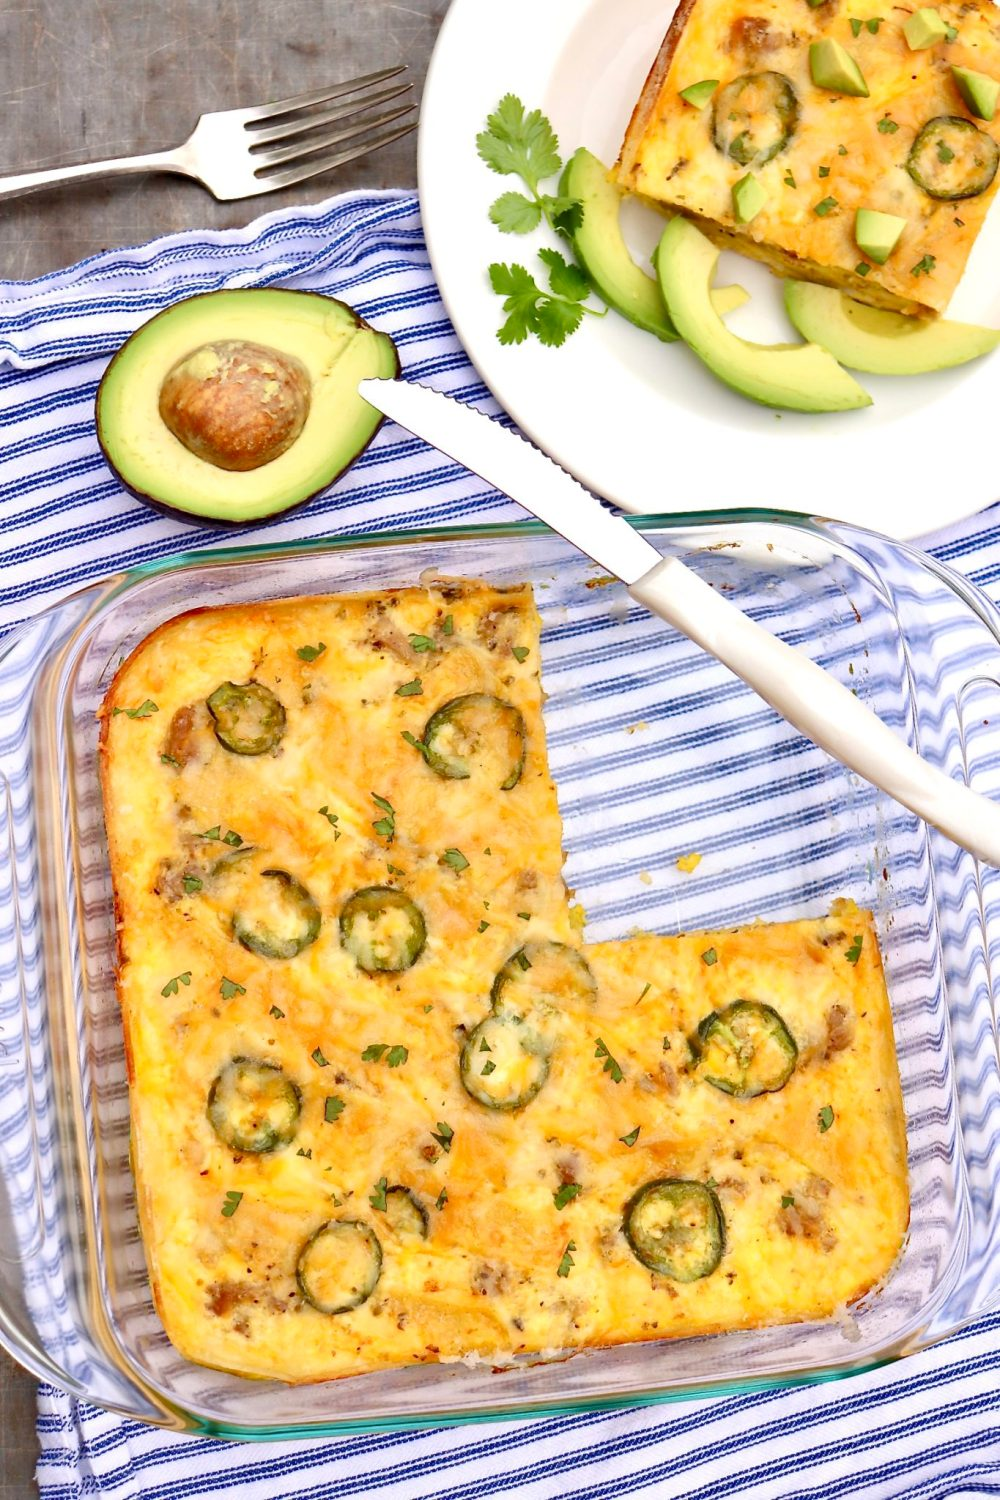 This pantry-based meal offers a modern twist on the traditional casserole and can be prepared the day before. Simply pop it in the oven when ready to eat!